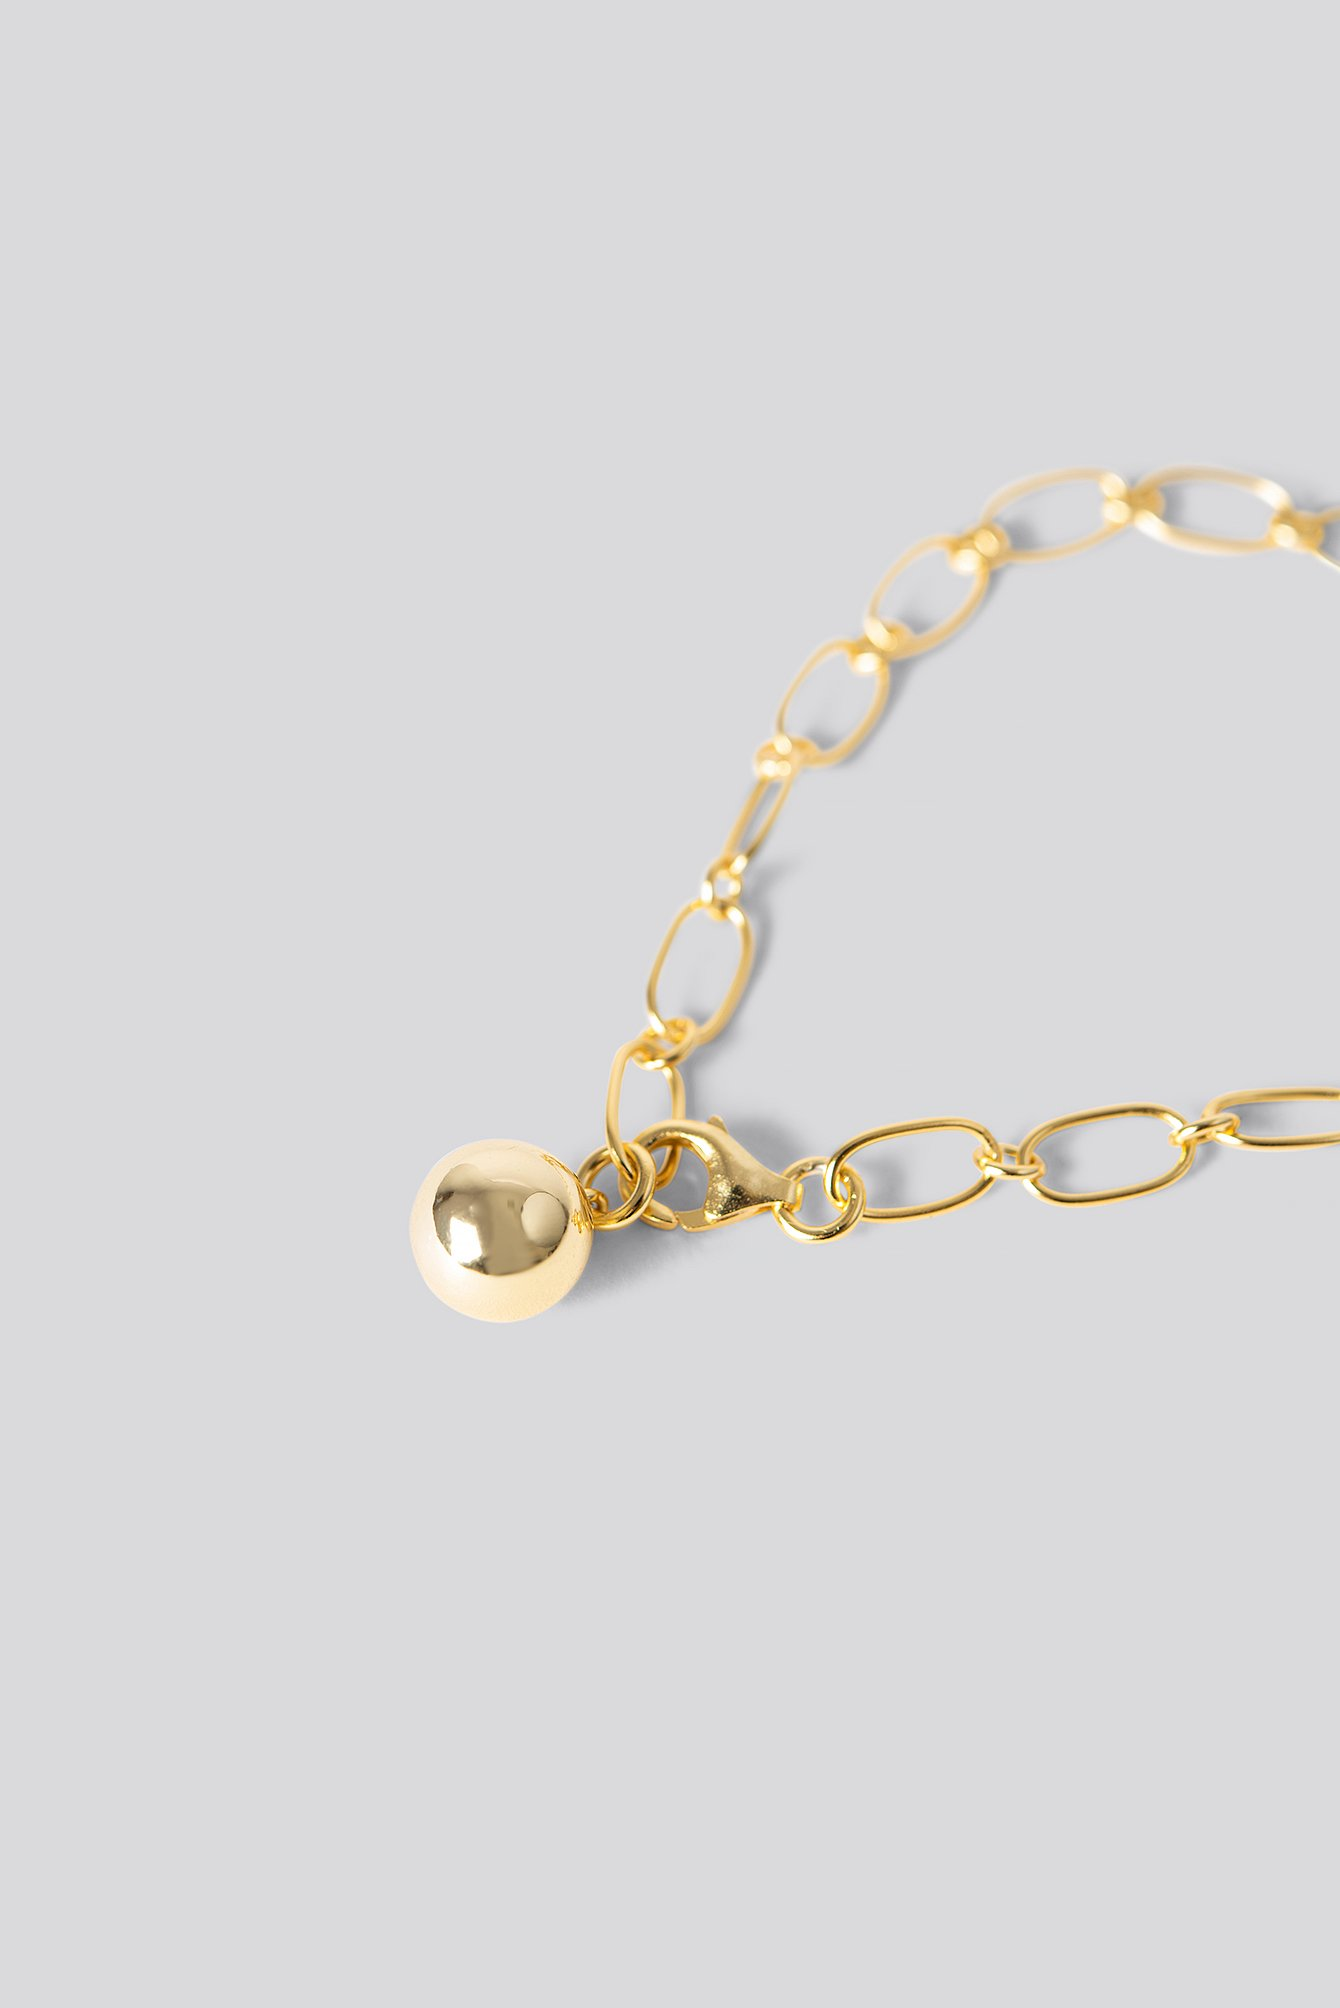 NA-KD Accessories Gold Plated Thin Chain Bracelet - Gold